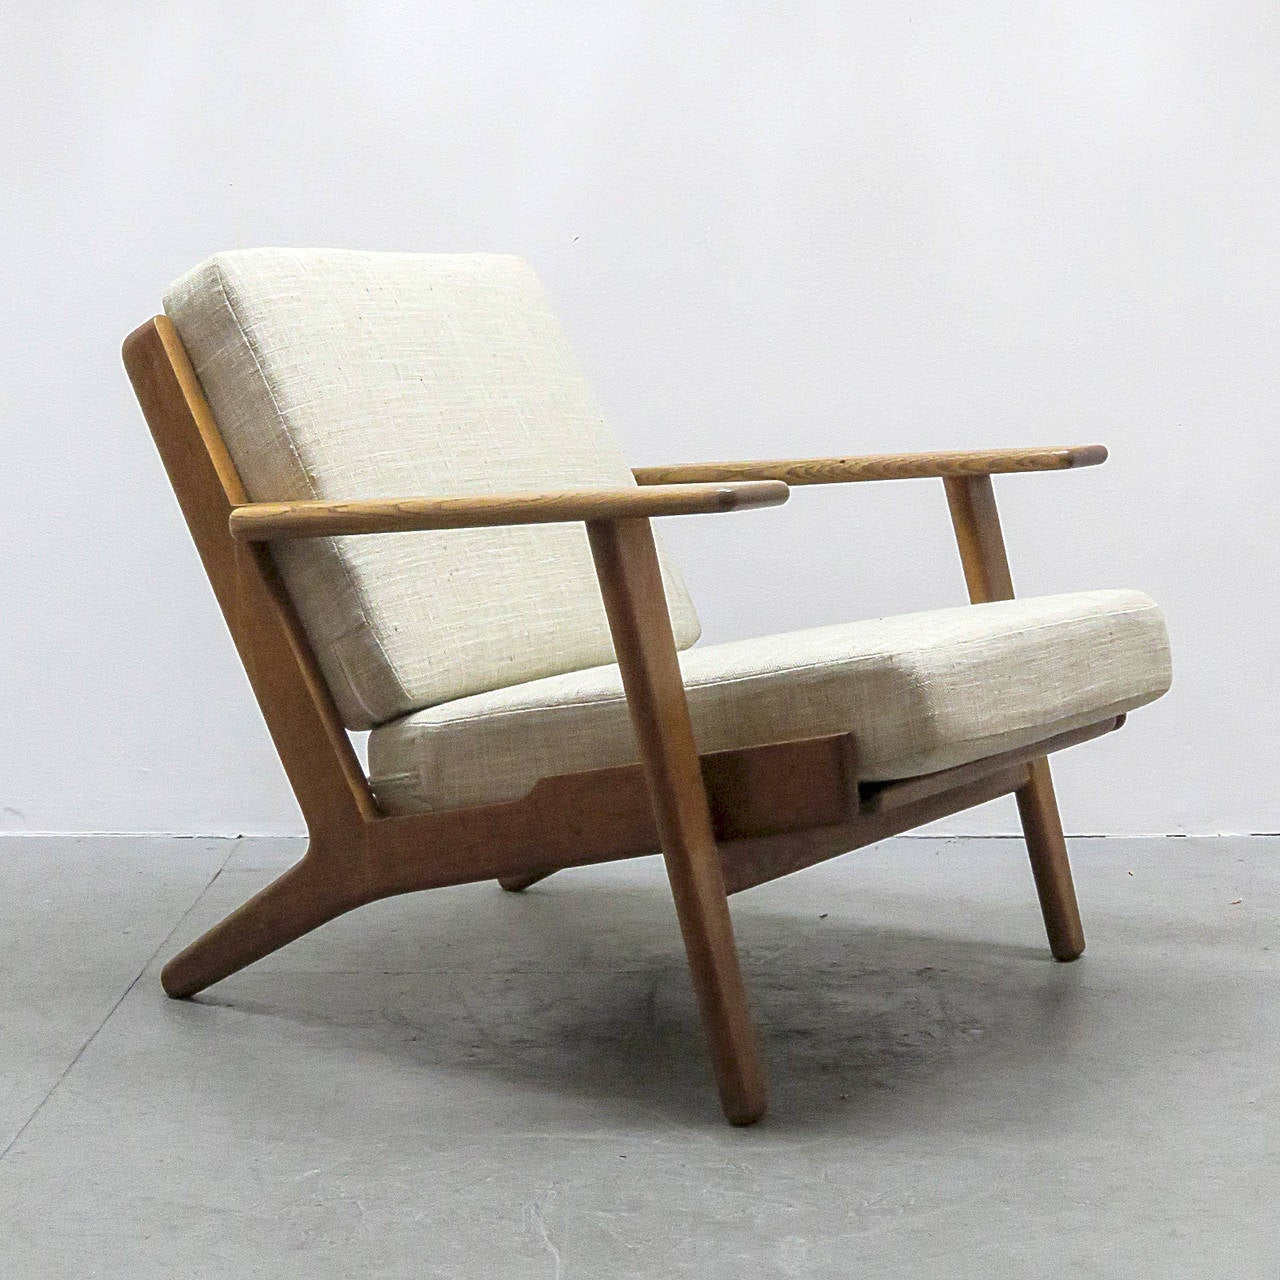 Hans J Wegner GE 290 Lounge Chair at 1stdibs